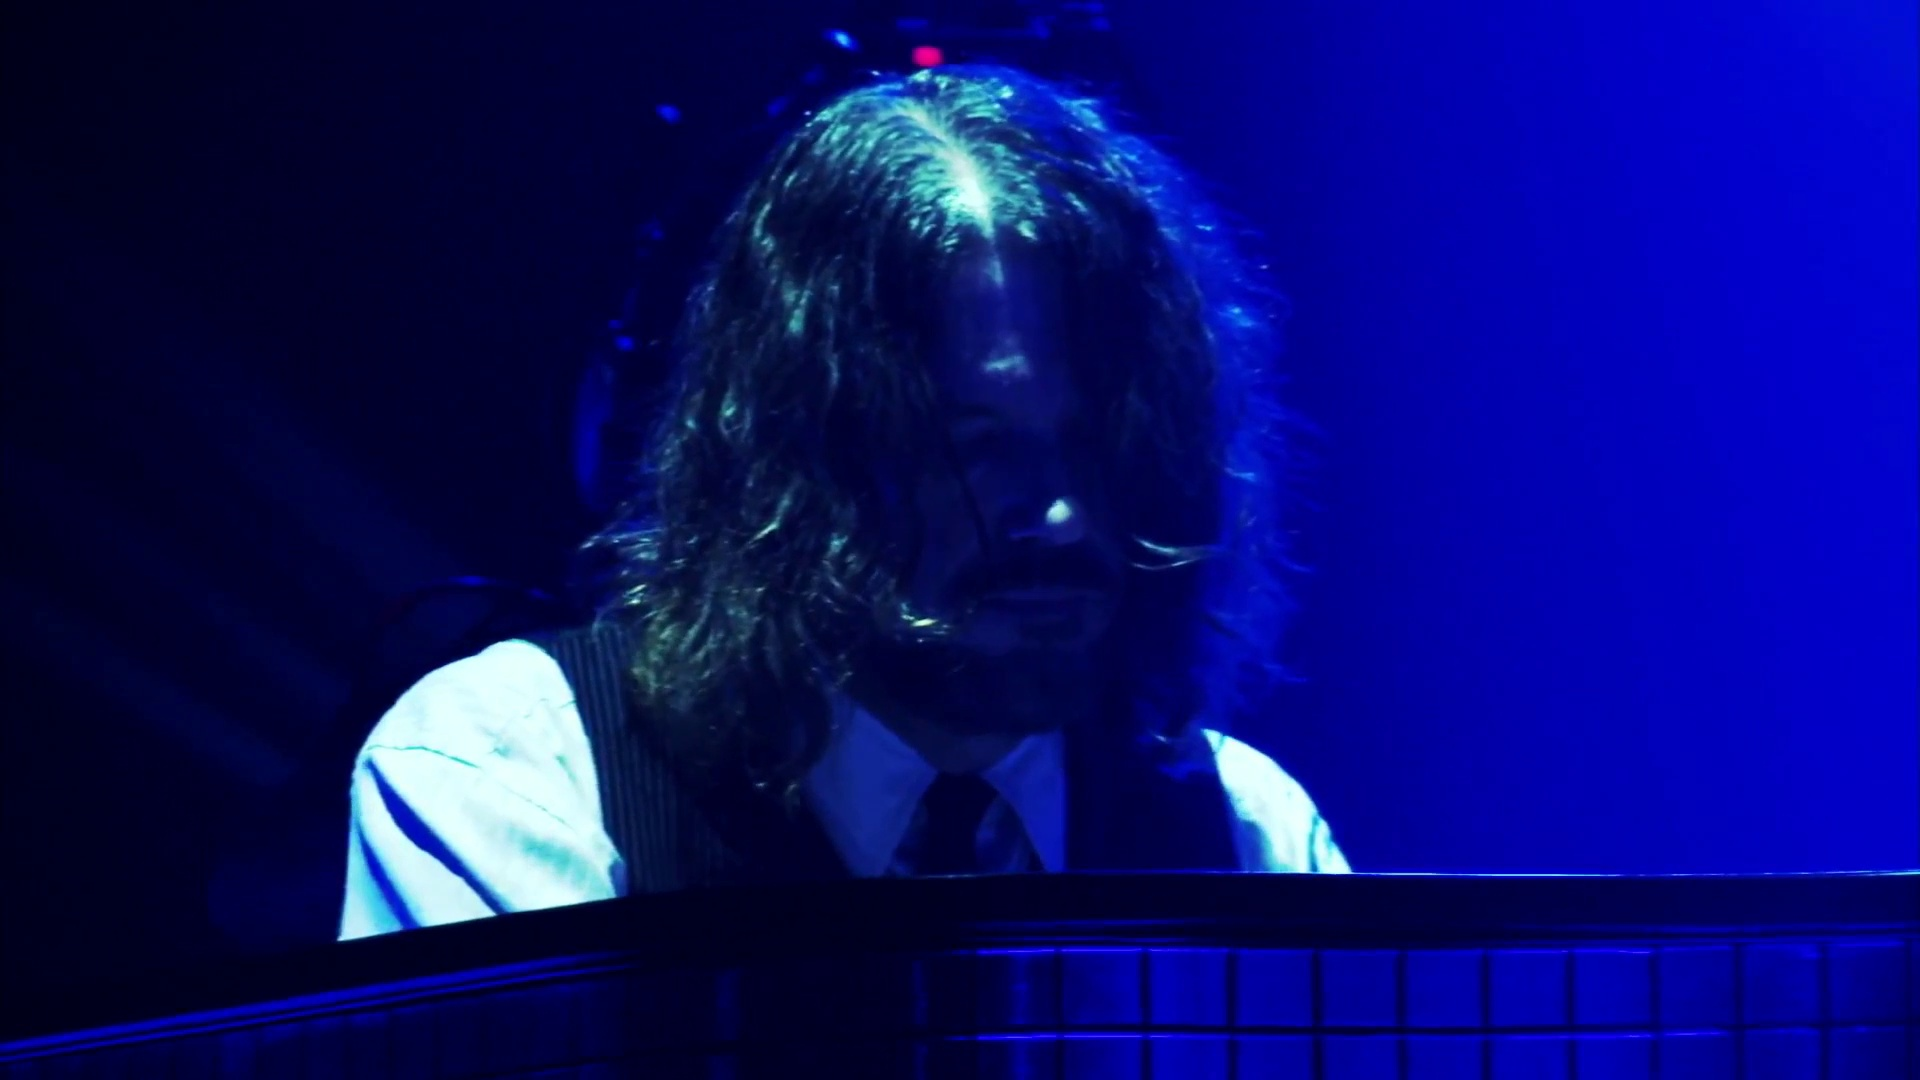 Dizzy Reed Piano Solo (No Quarter Led Zeppelin cover) – Guns N' Roses (live)